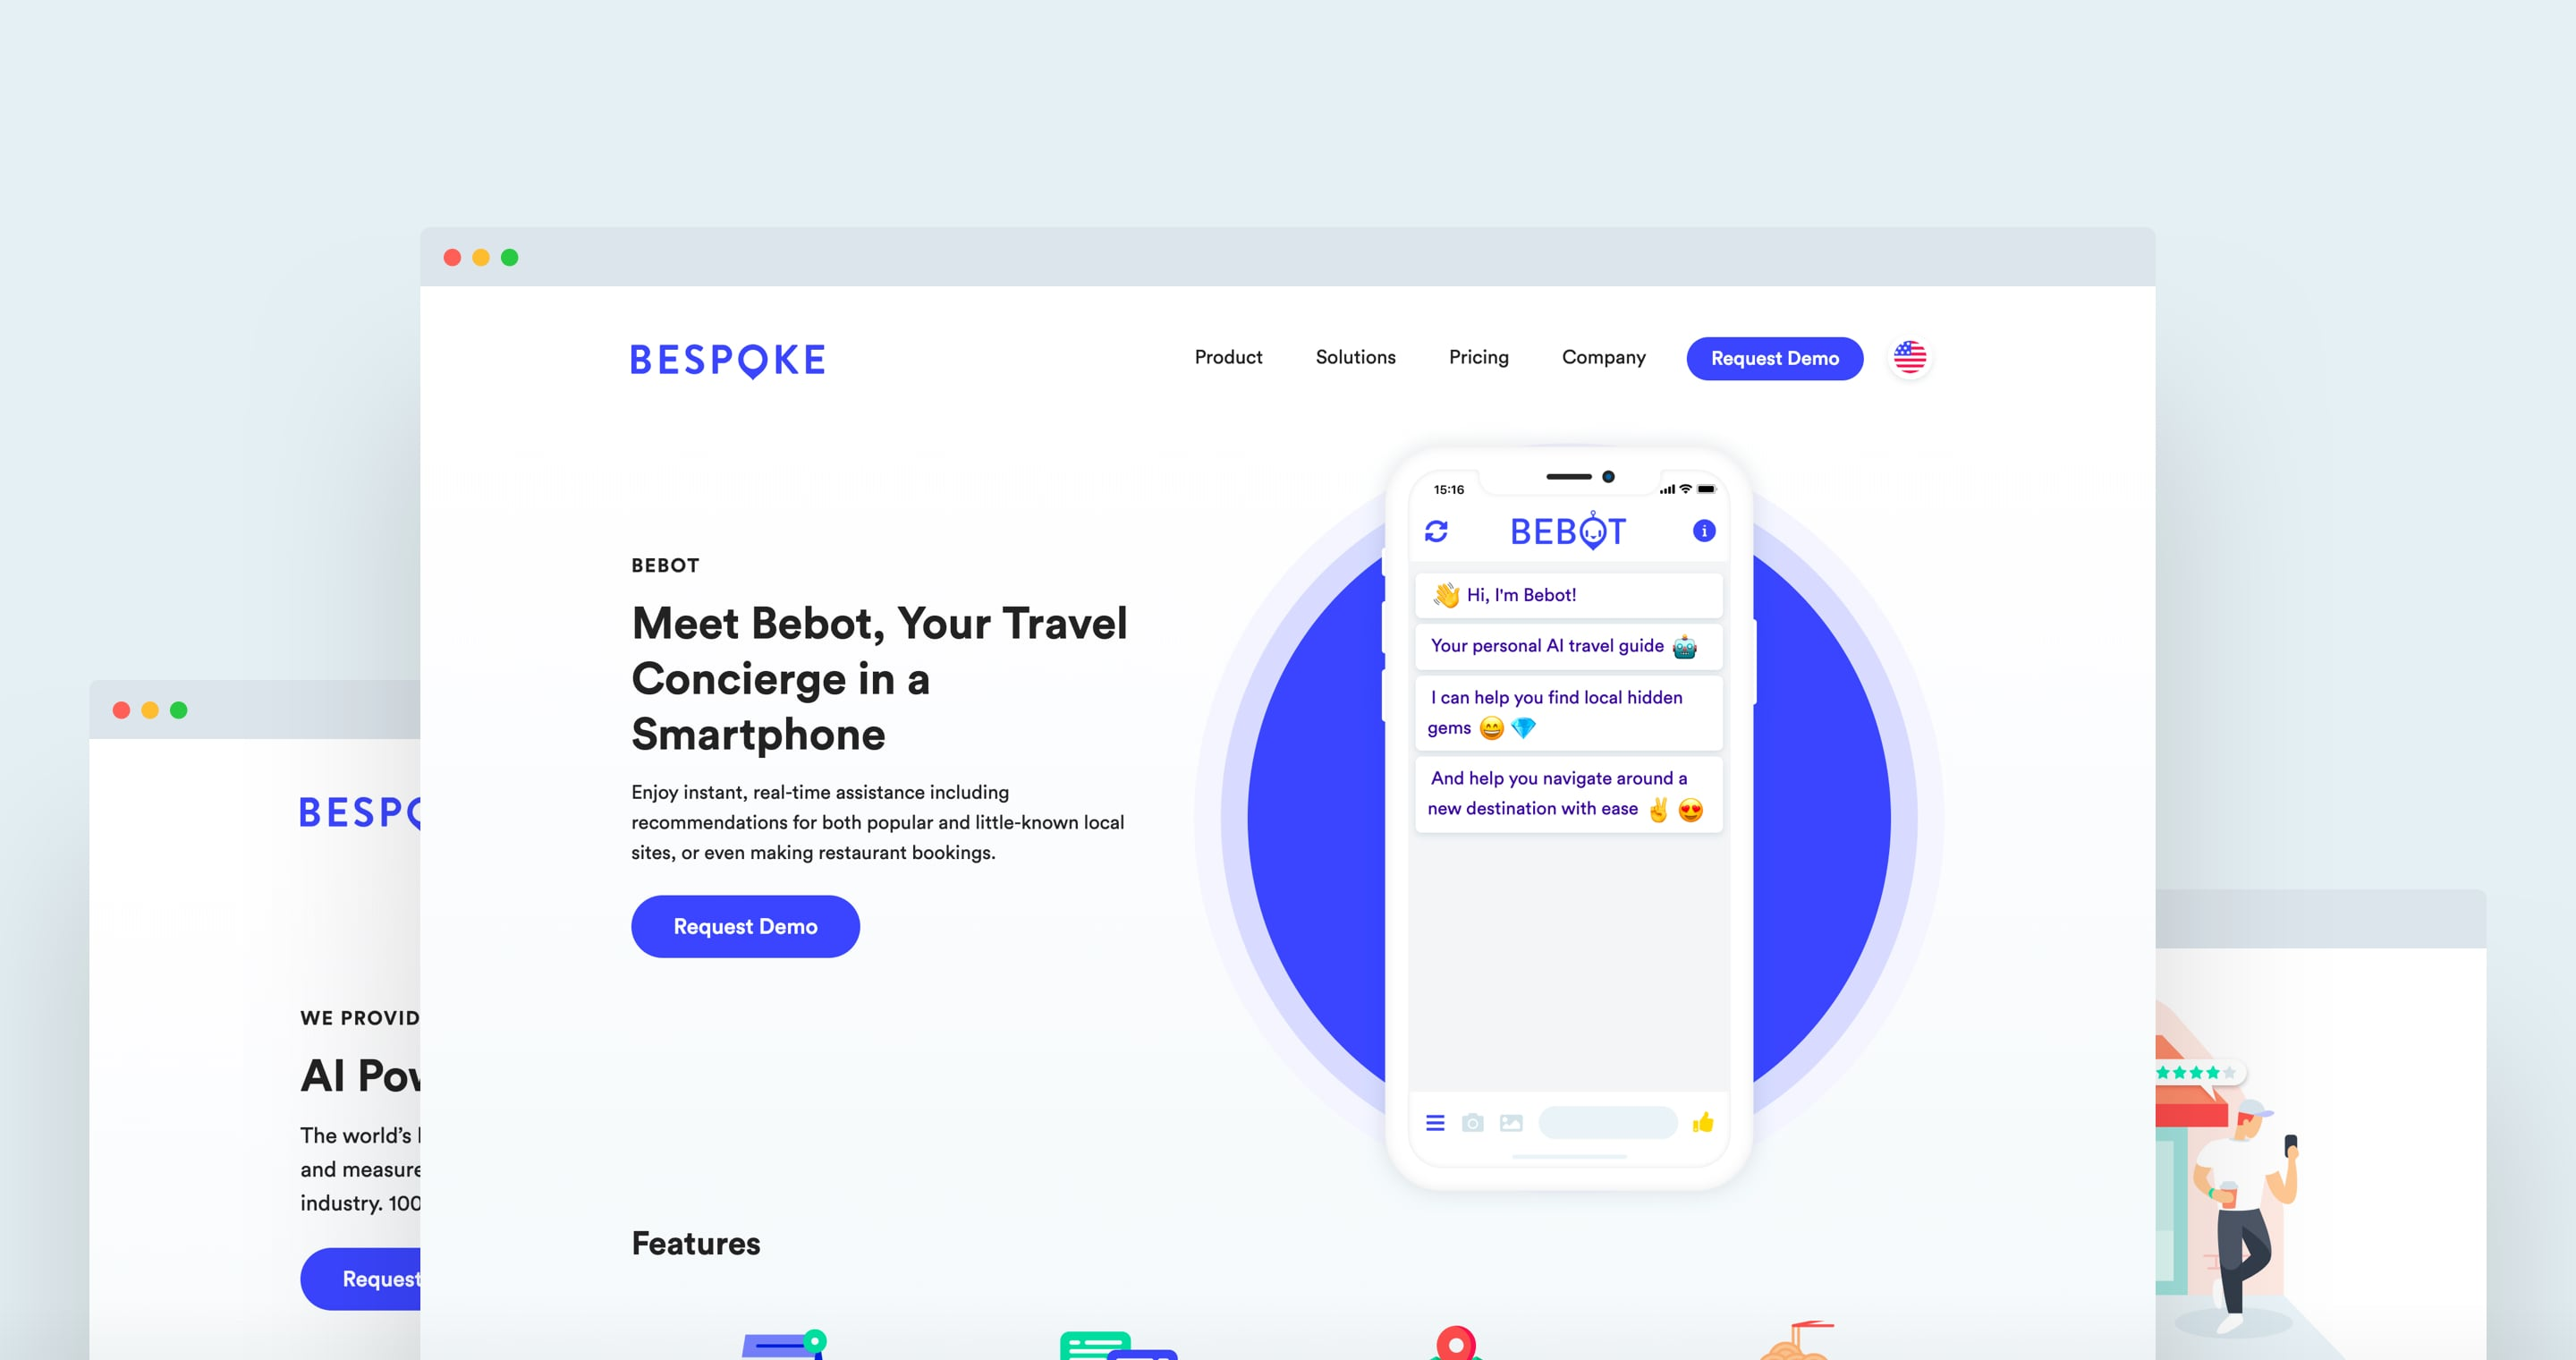 Be-spoke.io